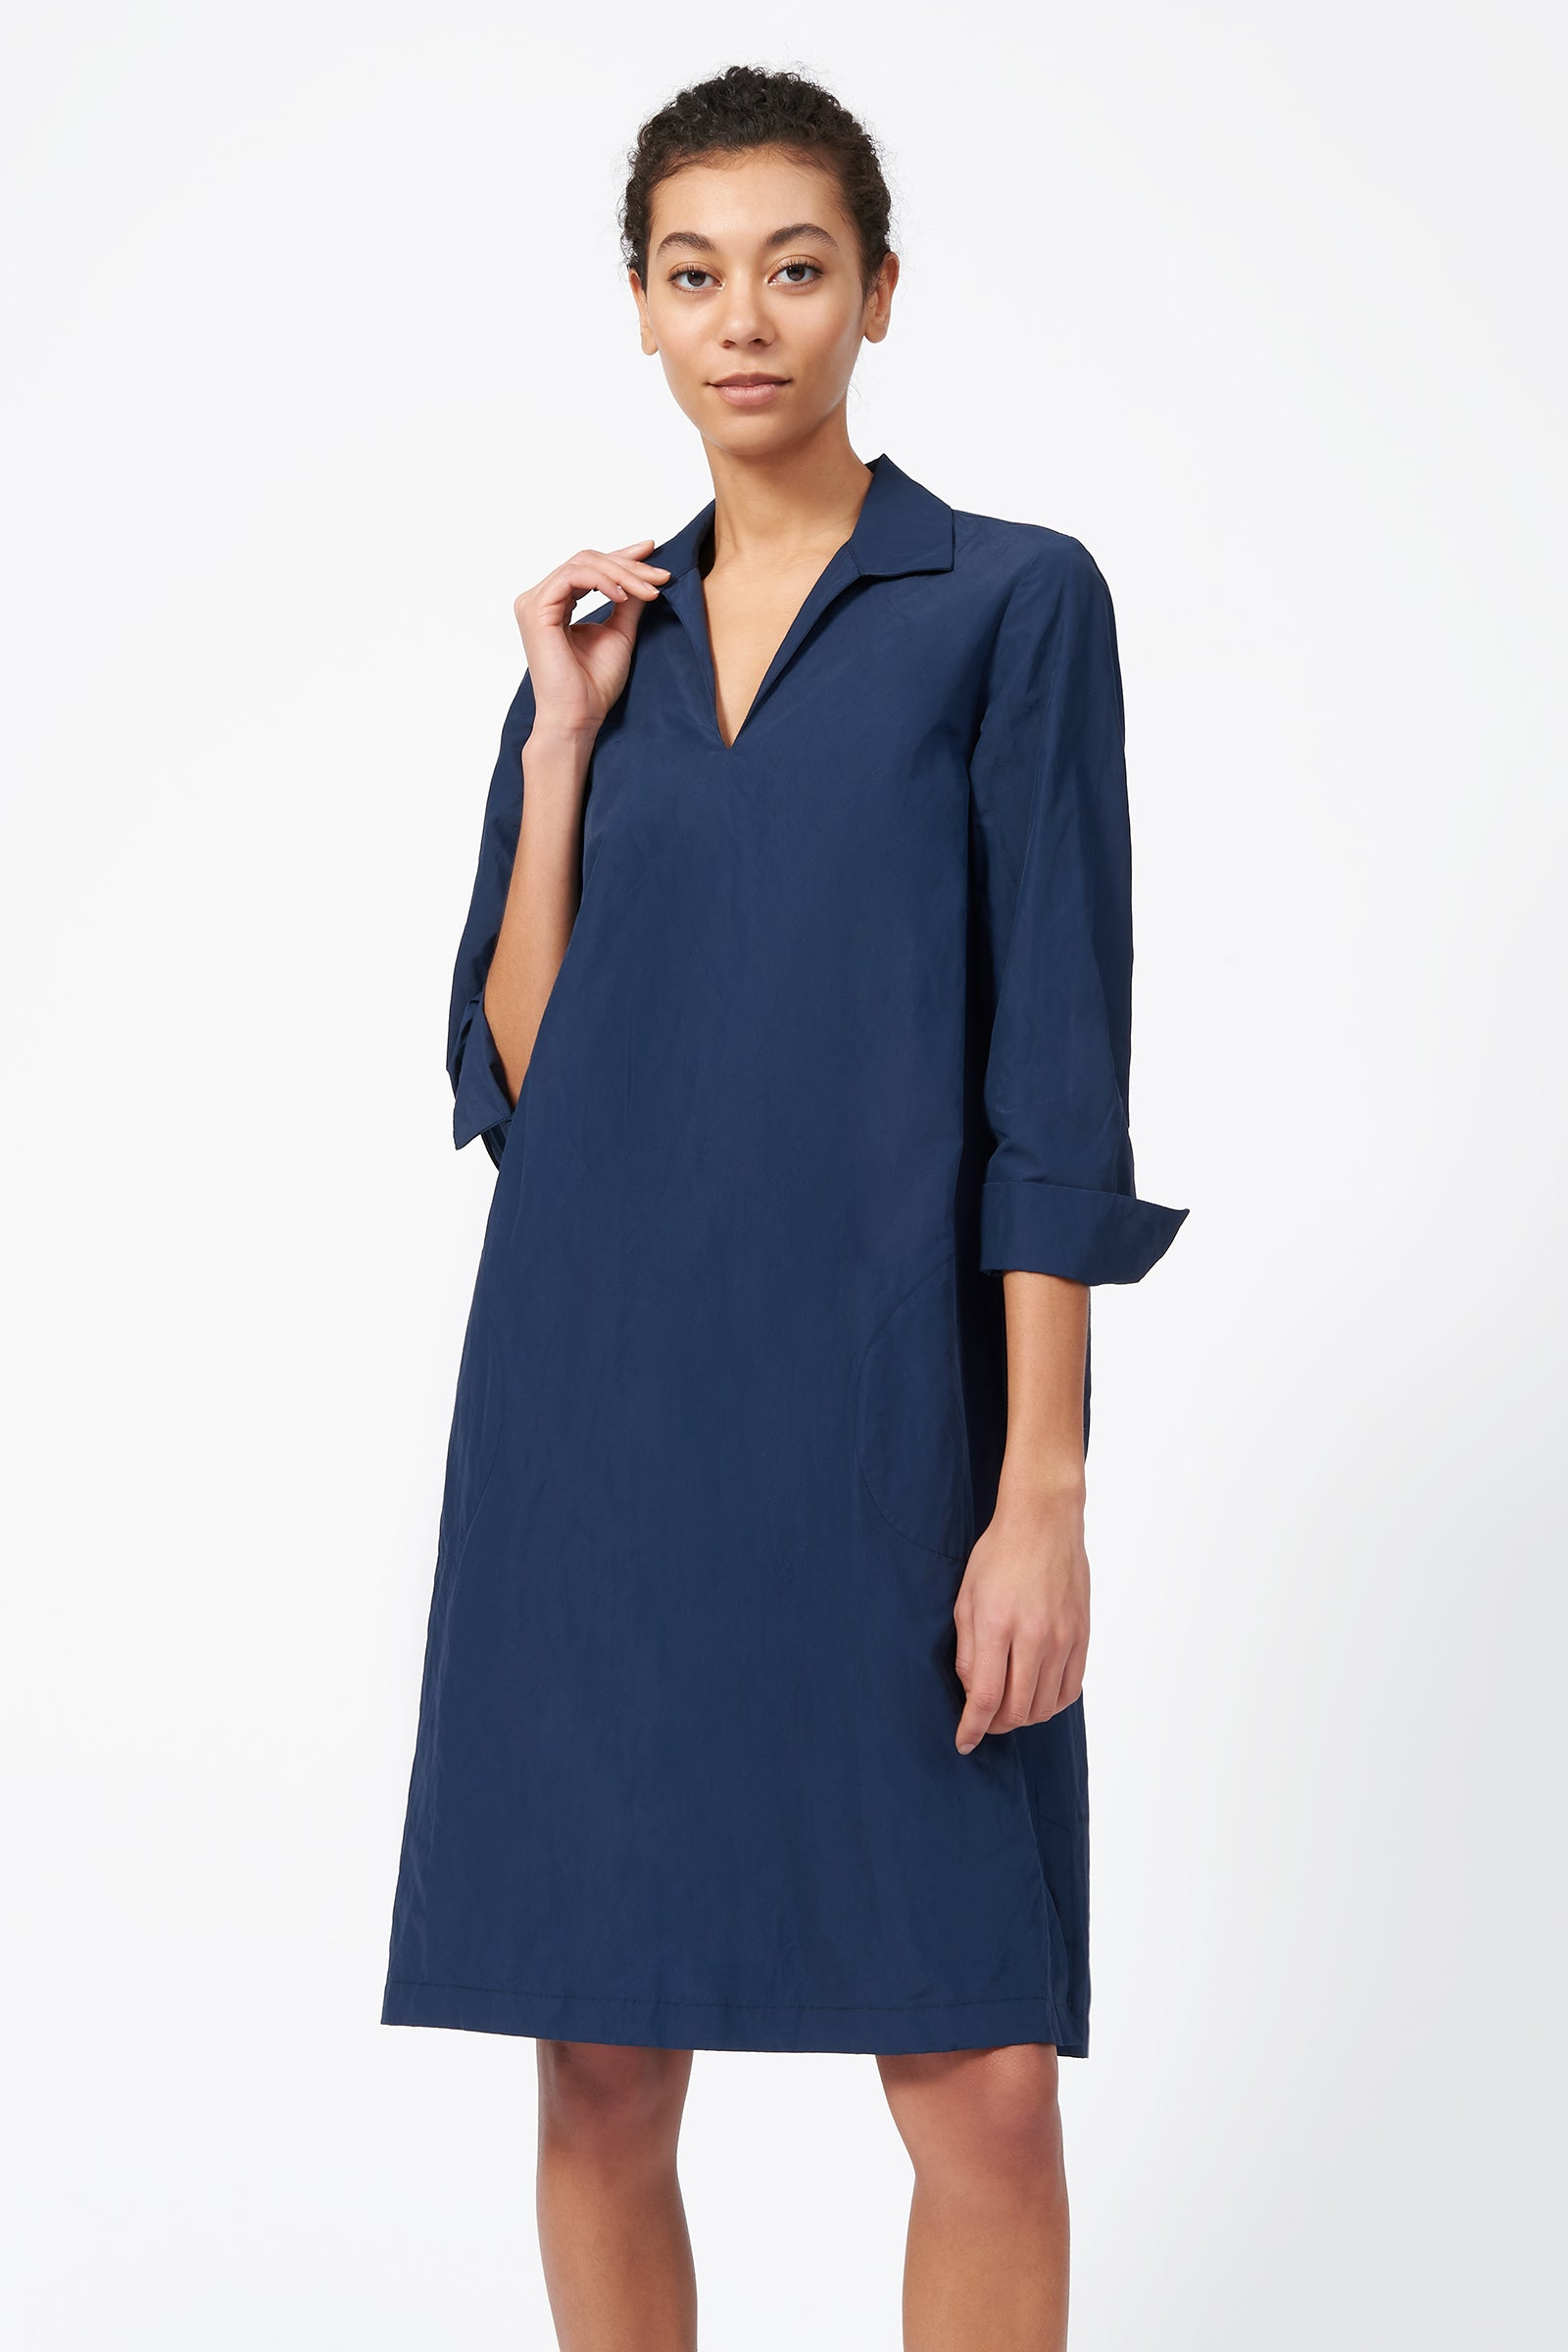 Kal Rieman Collared V Neck Dress in Navy on Model Full Front Side View